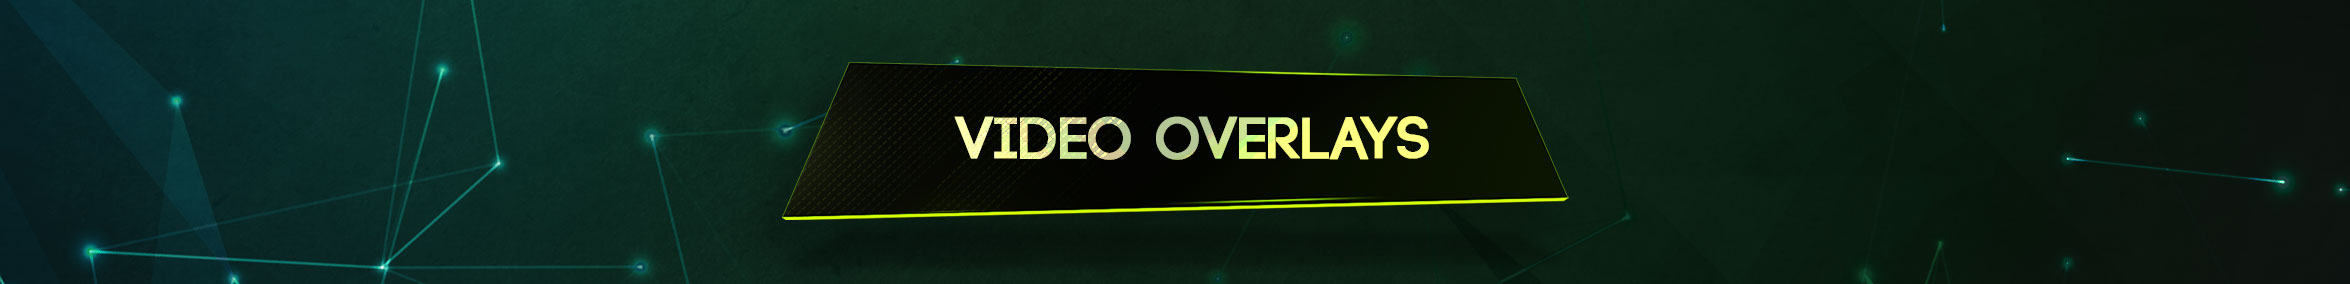 animated video overlay